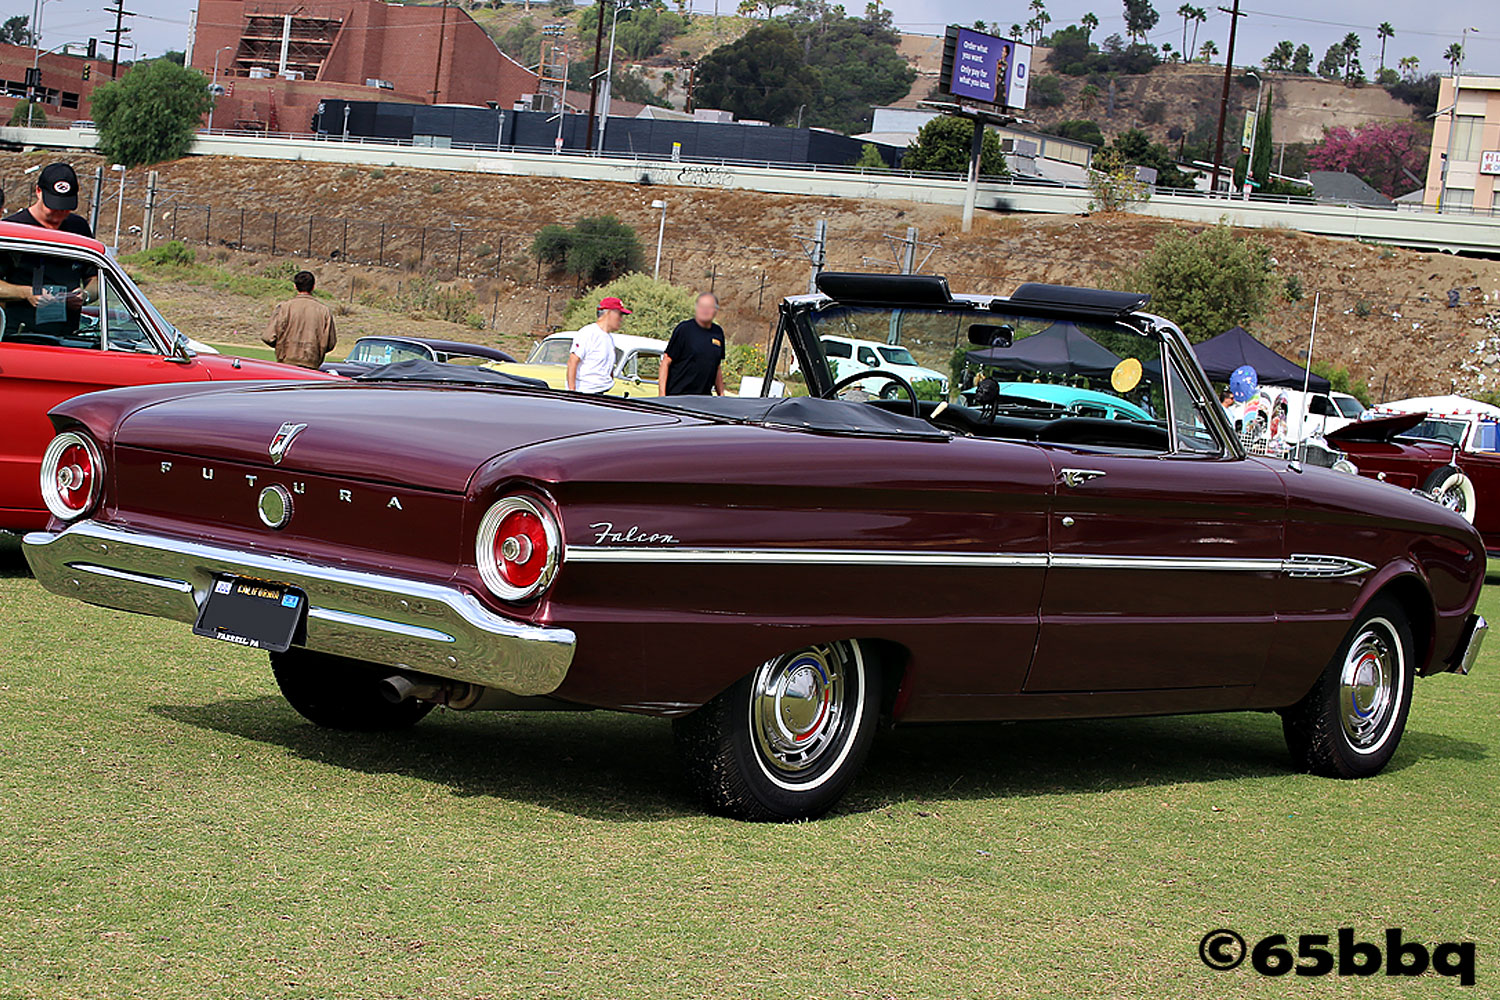 so-cal-falcons-classics-in-the-park-2018-65bbq-28.jpg